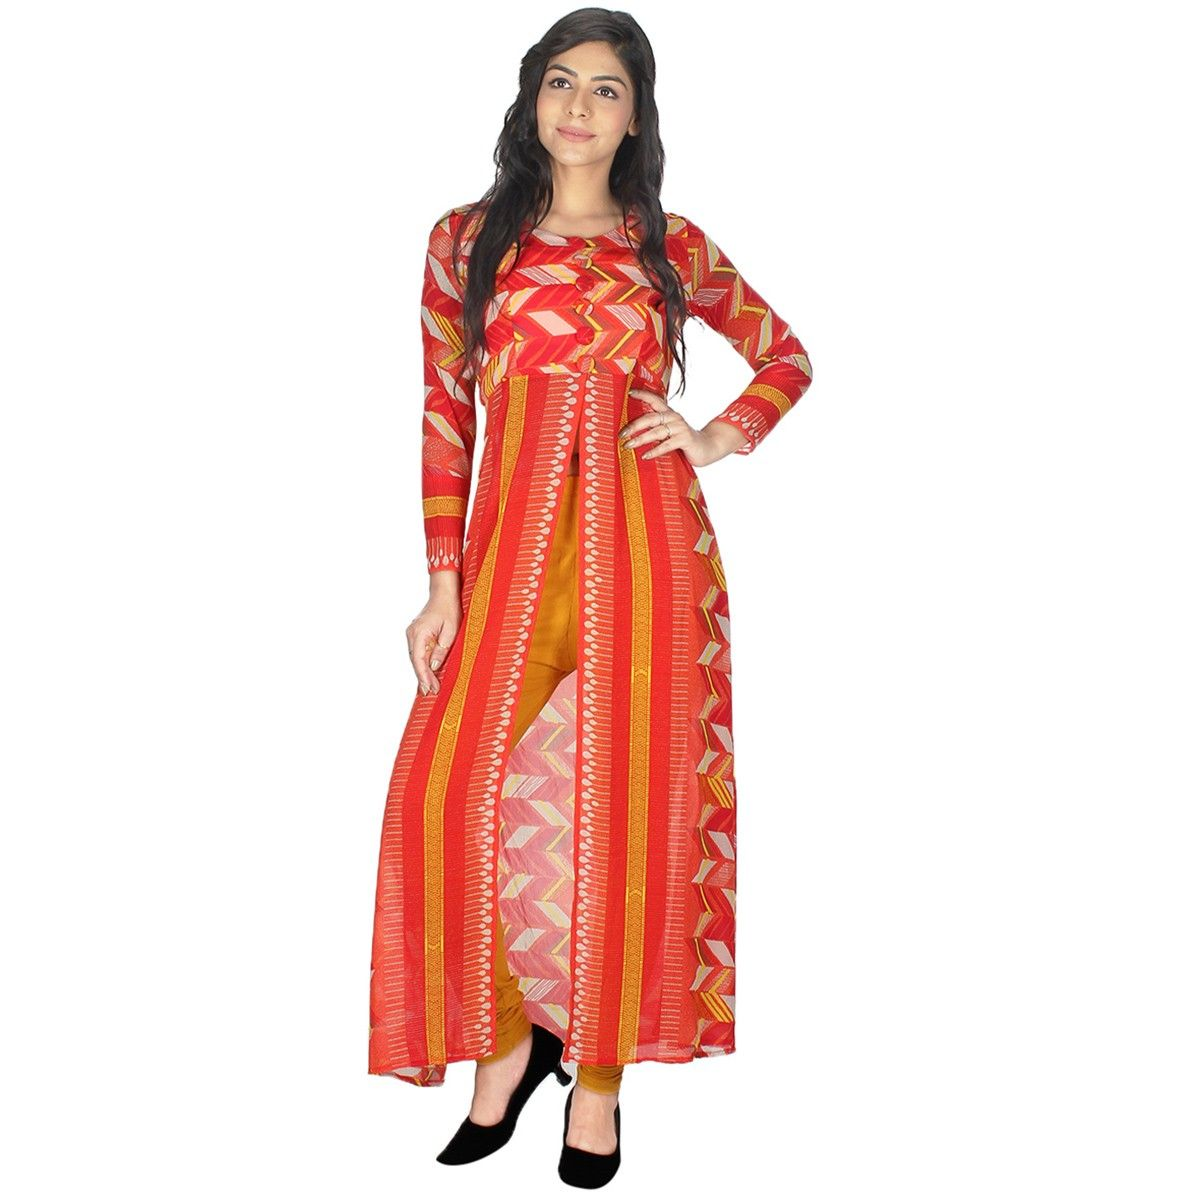 ad6f9811c Georgette+Red+Printed+Stitched+Overlay+Kurti+-+T6100O at Rs 649